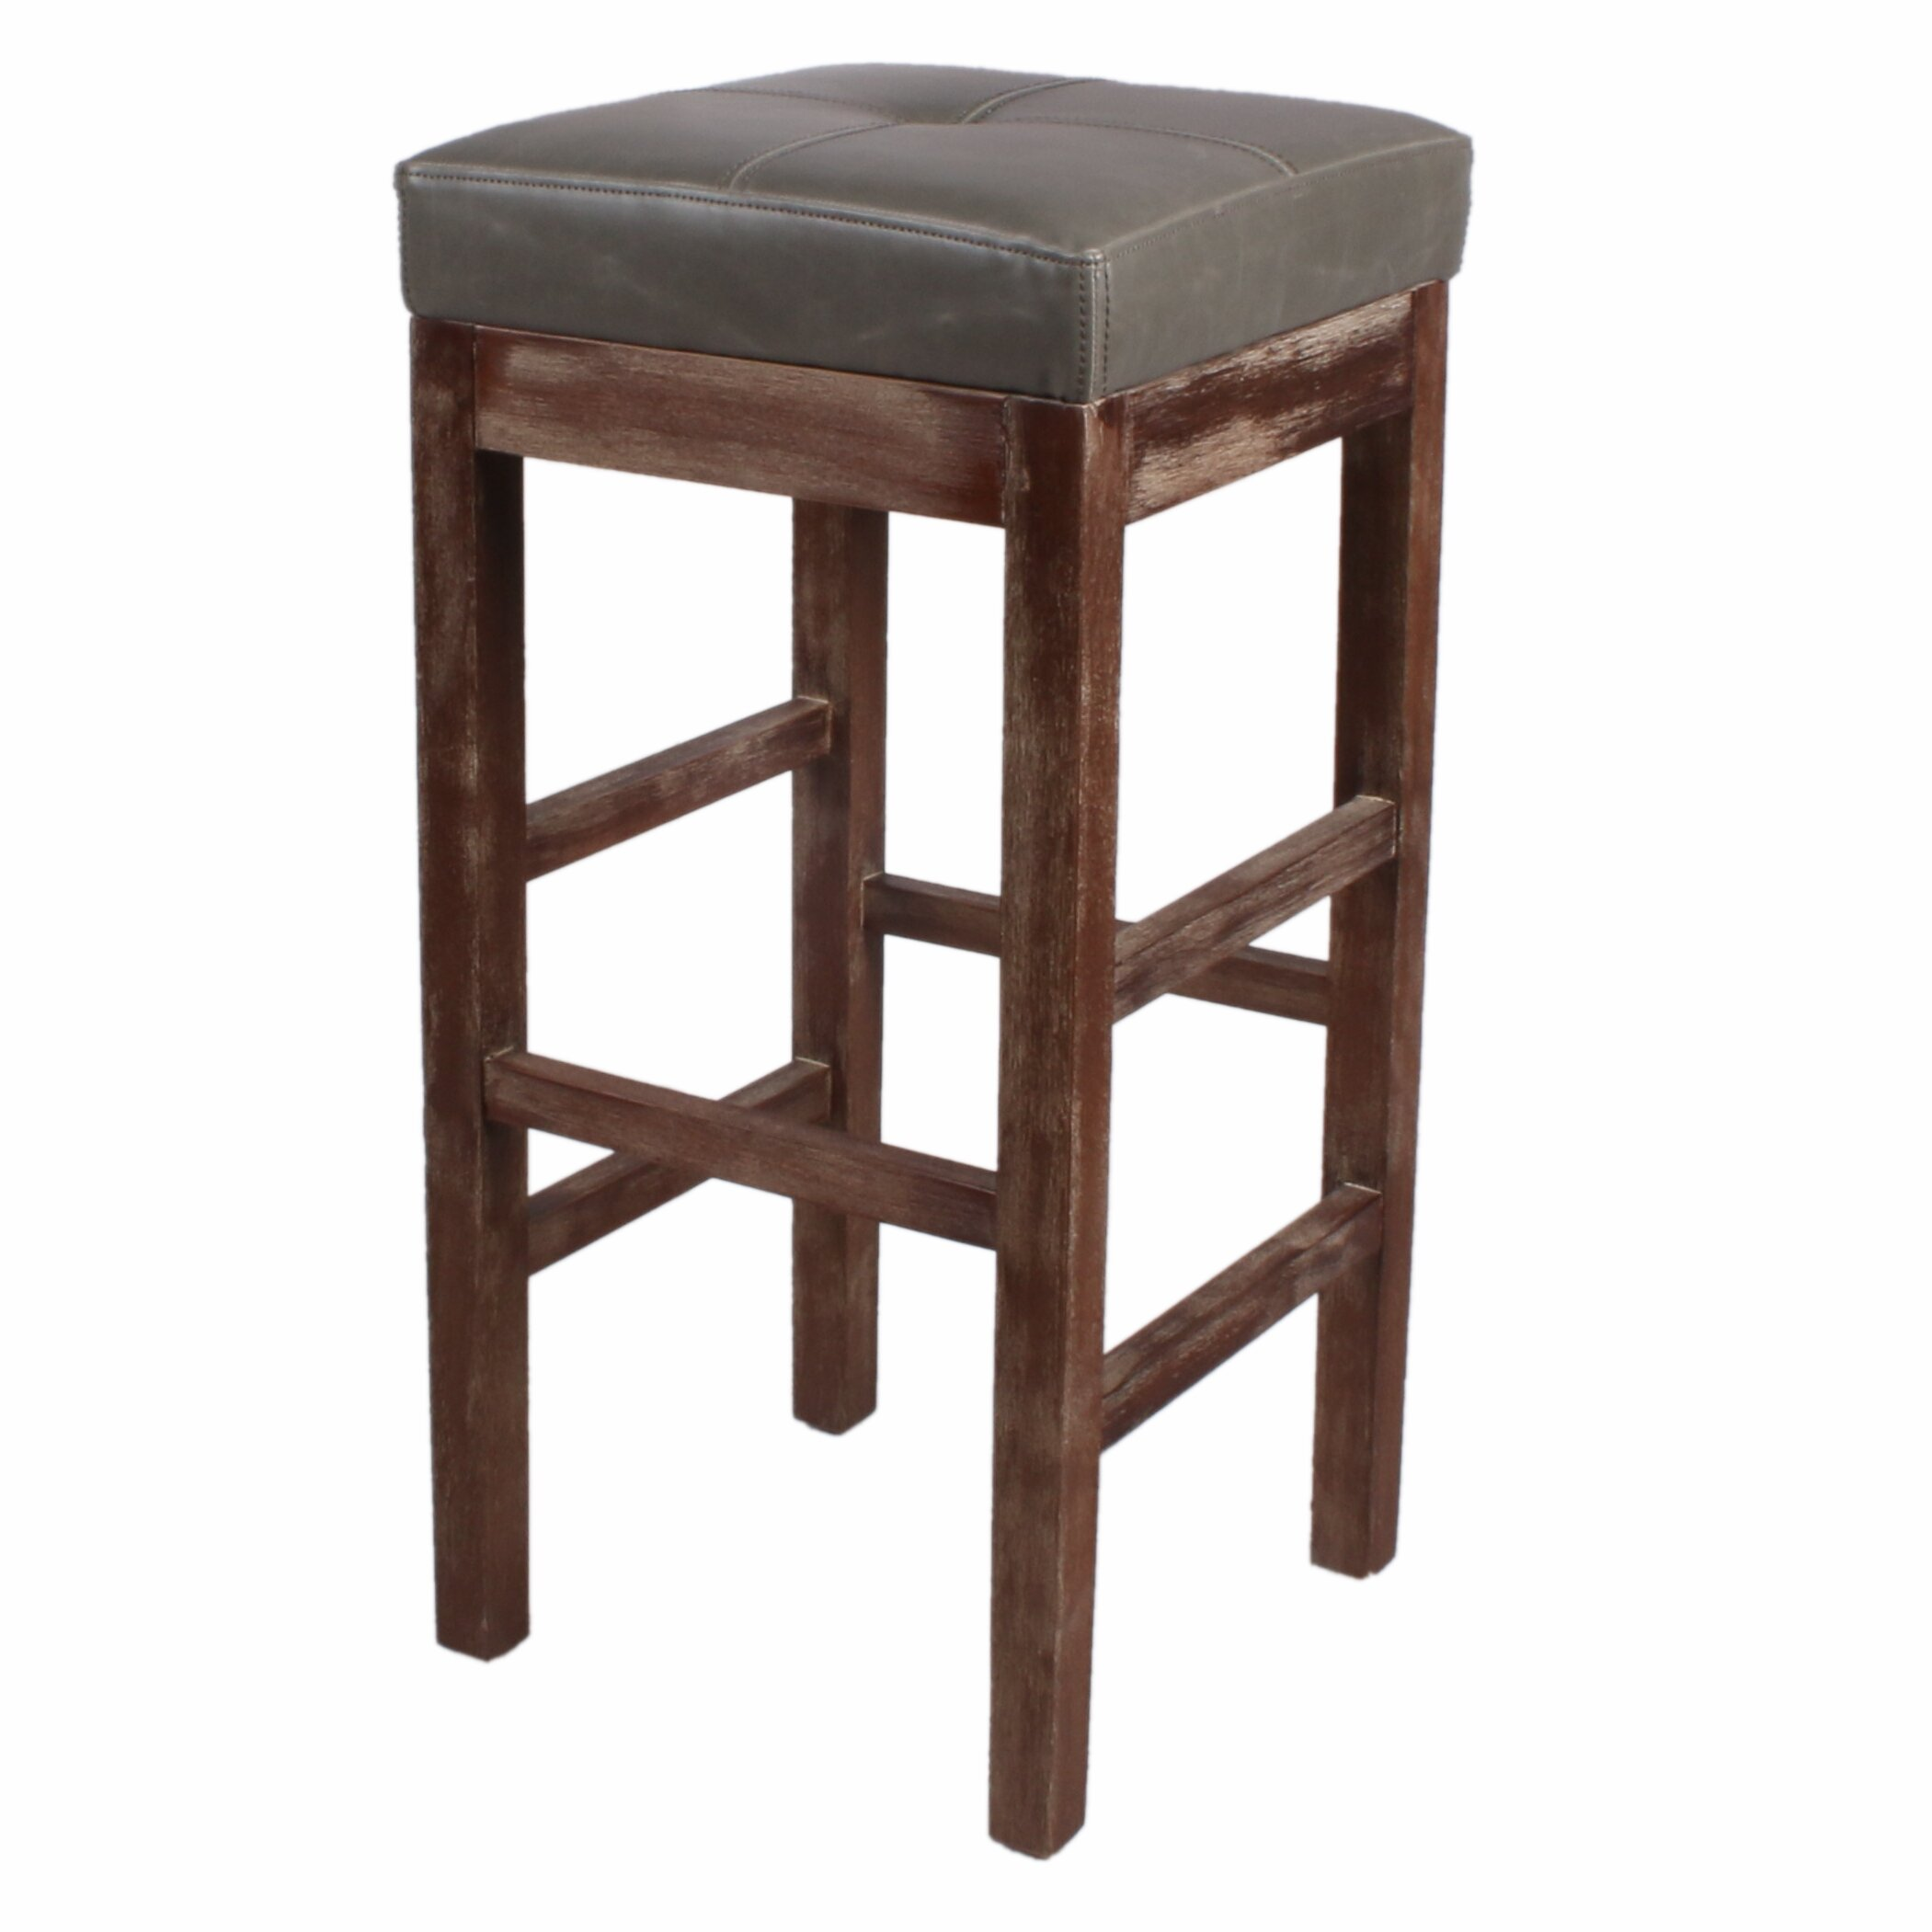 New Pacific Direct Valencia 31quot Bar Stool amp Reviews Wayfair : Valencia Bonded Leather Backless Bar Stool Mystique Gray Legs 108631B MG from www.wayfair.com size 2101 x 2101 jpeg 179kB